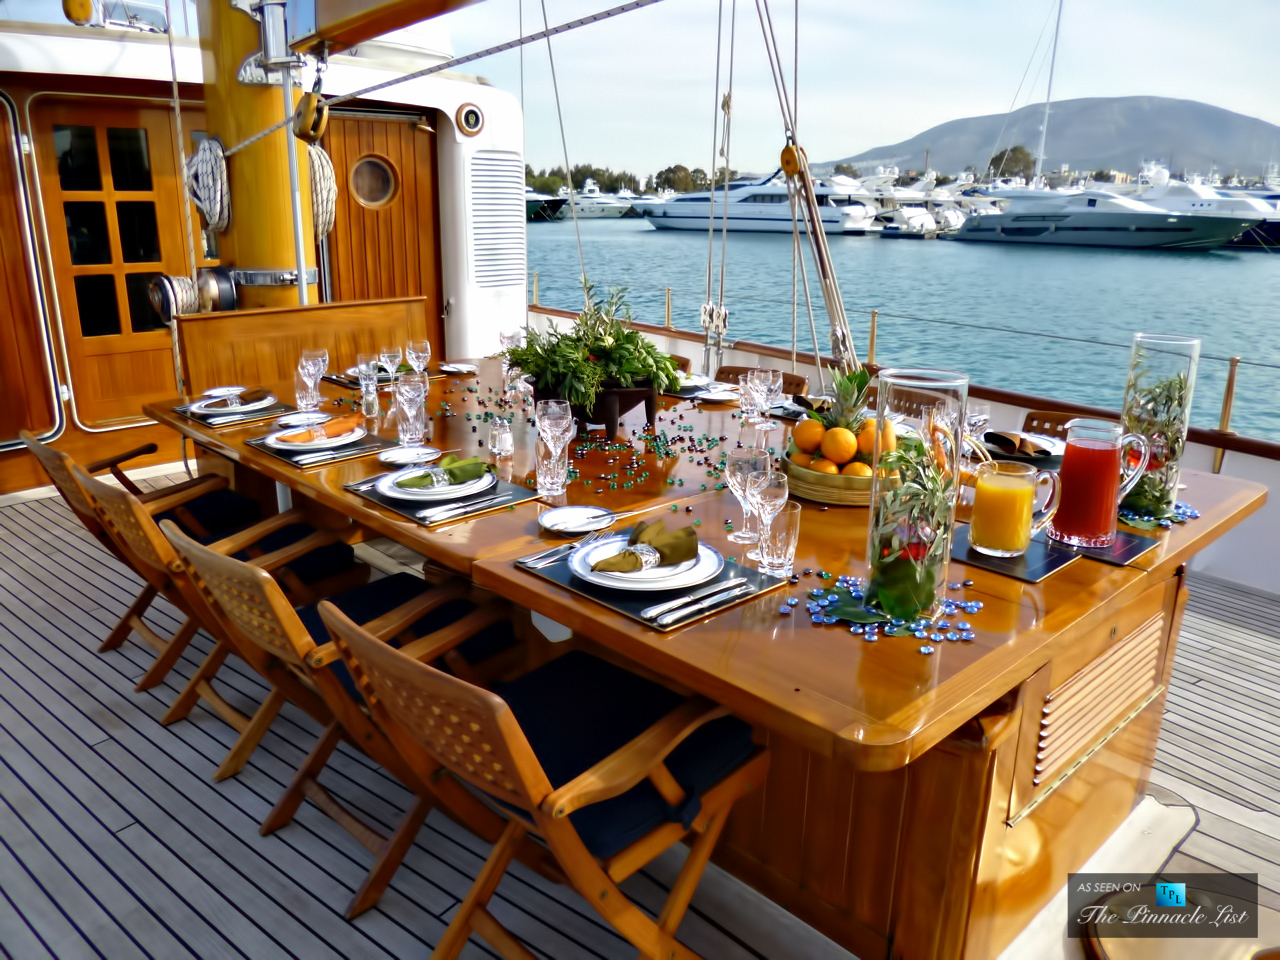 Fleurtje – Four Classic Superyachts Offering Timeless Elegance and Modern Comfort